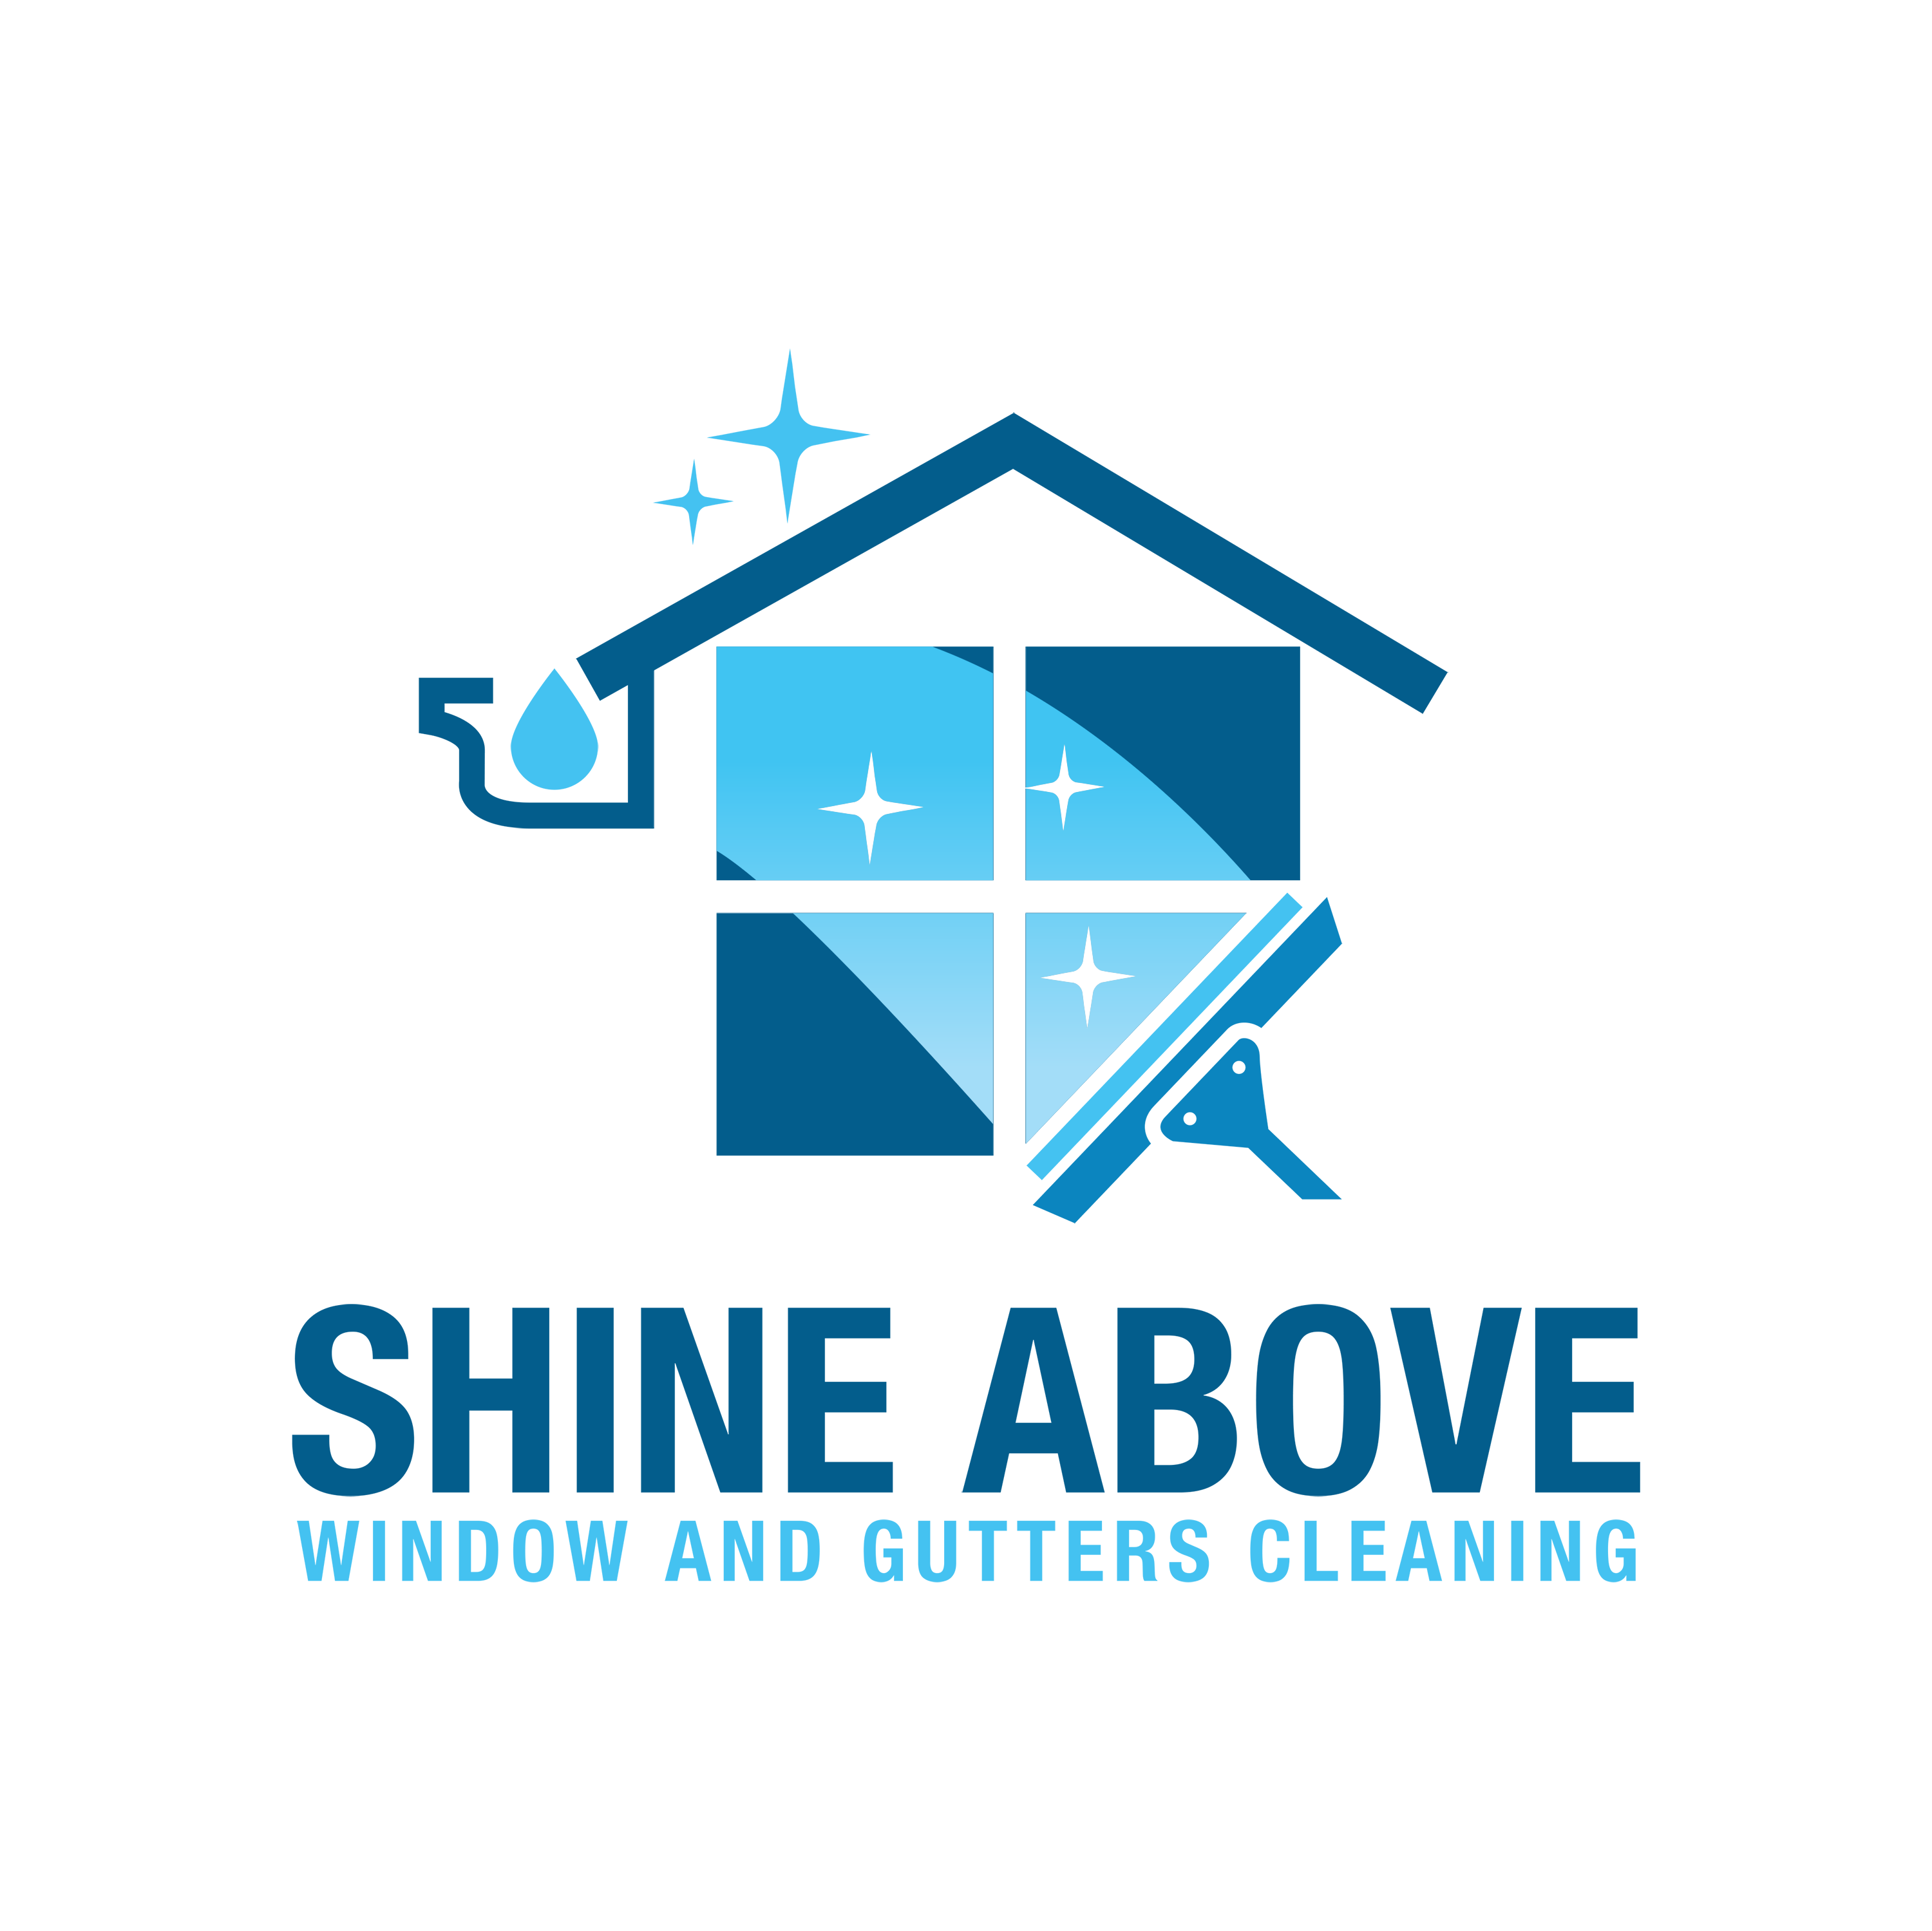 Mosaic Home services brands window and gutter cleaning